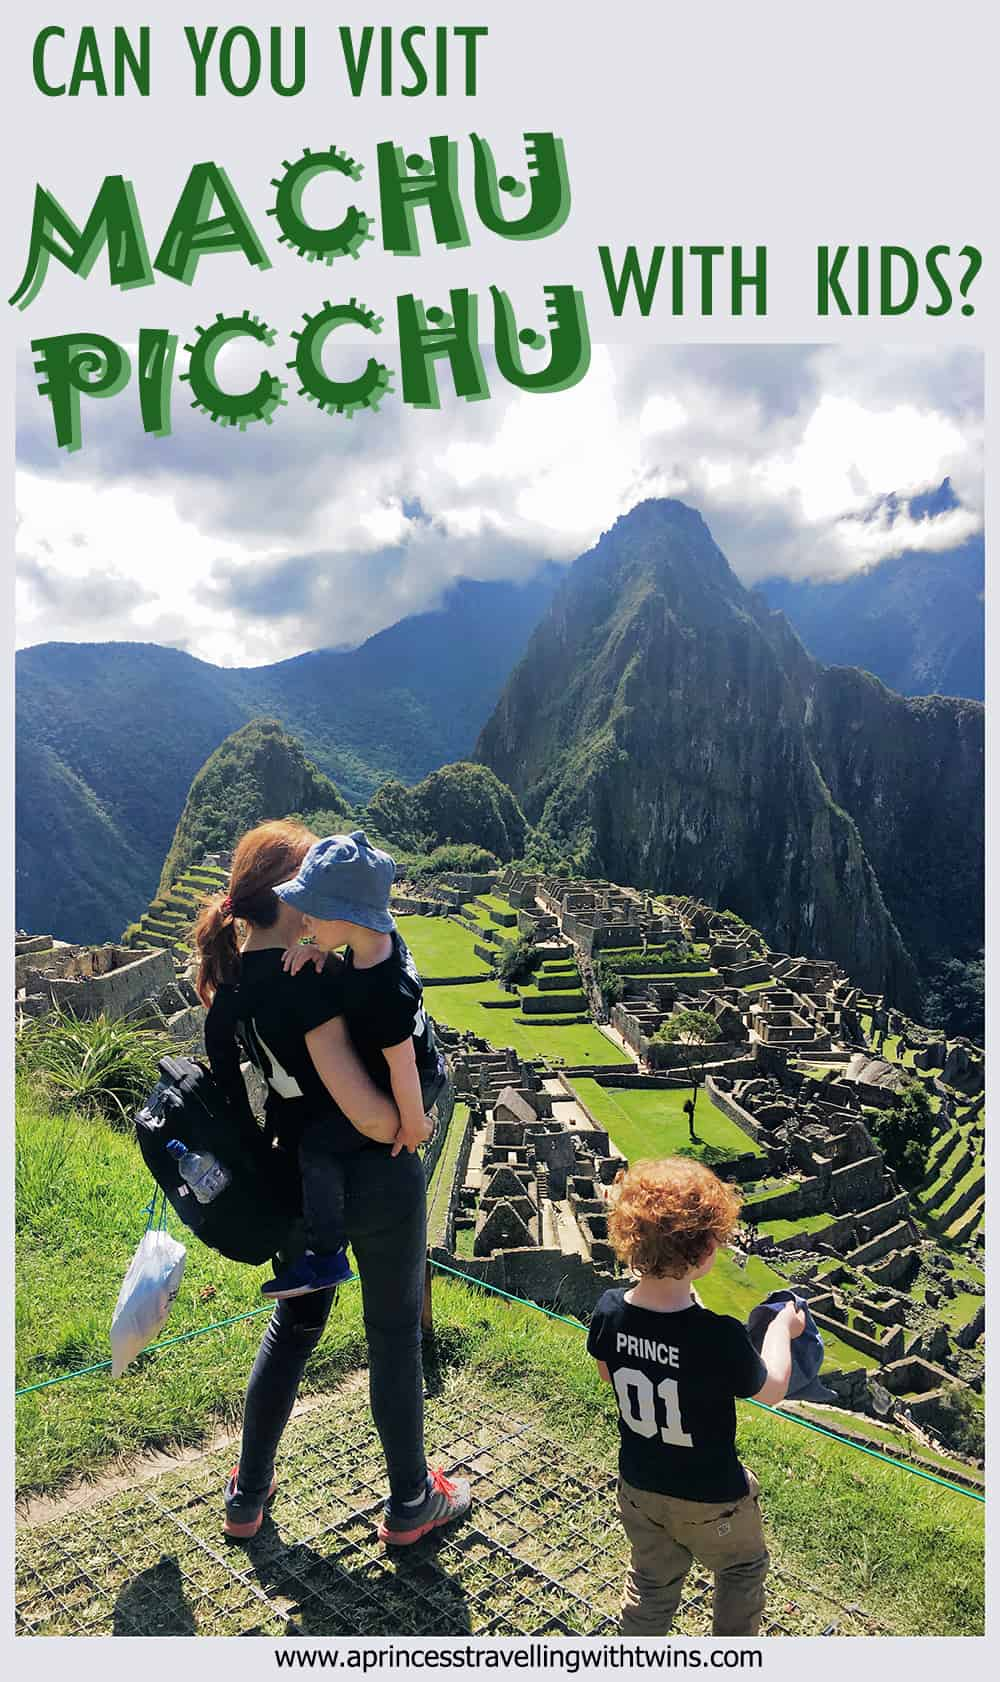 Can you visit Machu Picchu with kids?